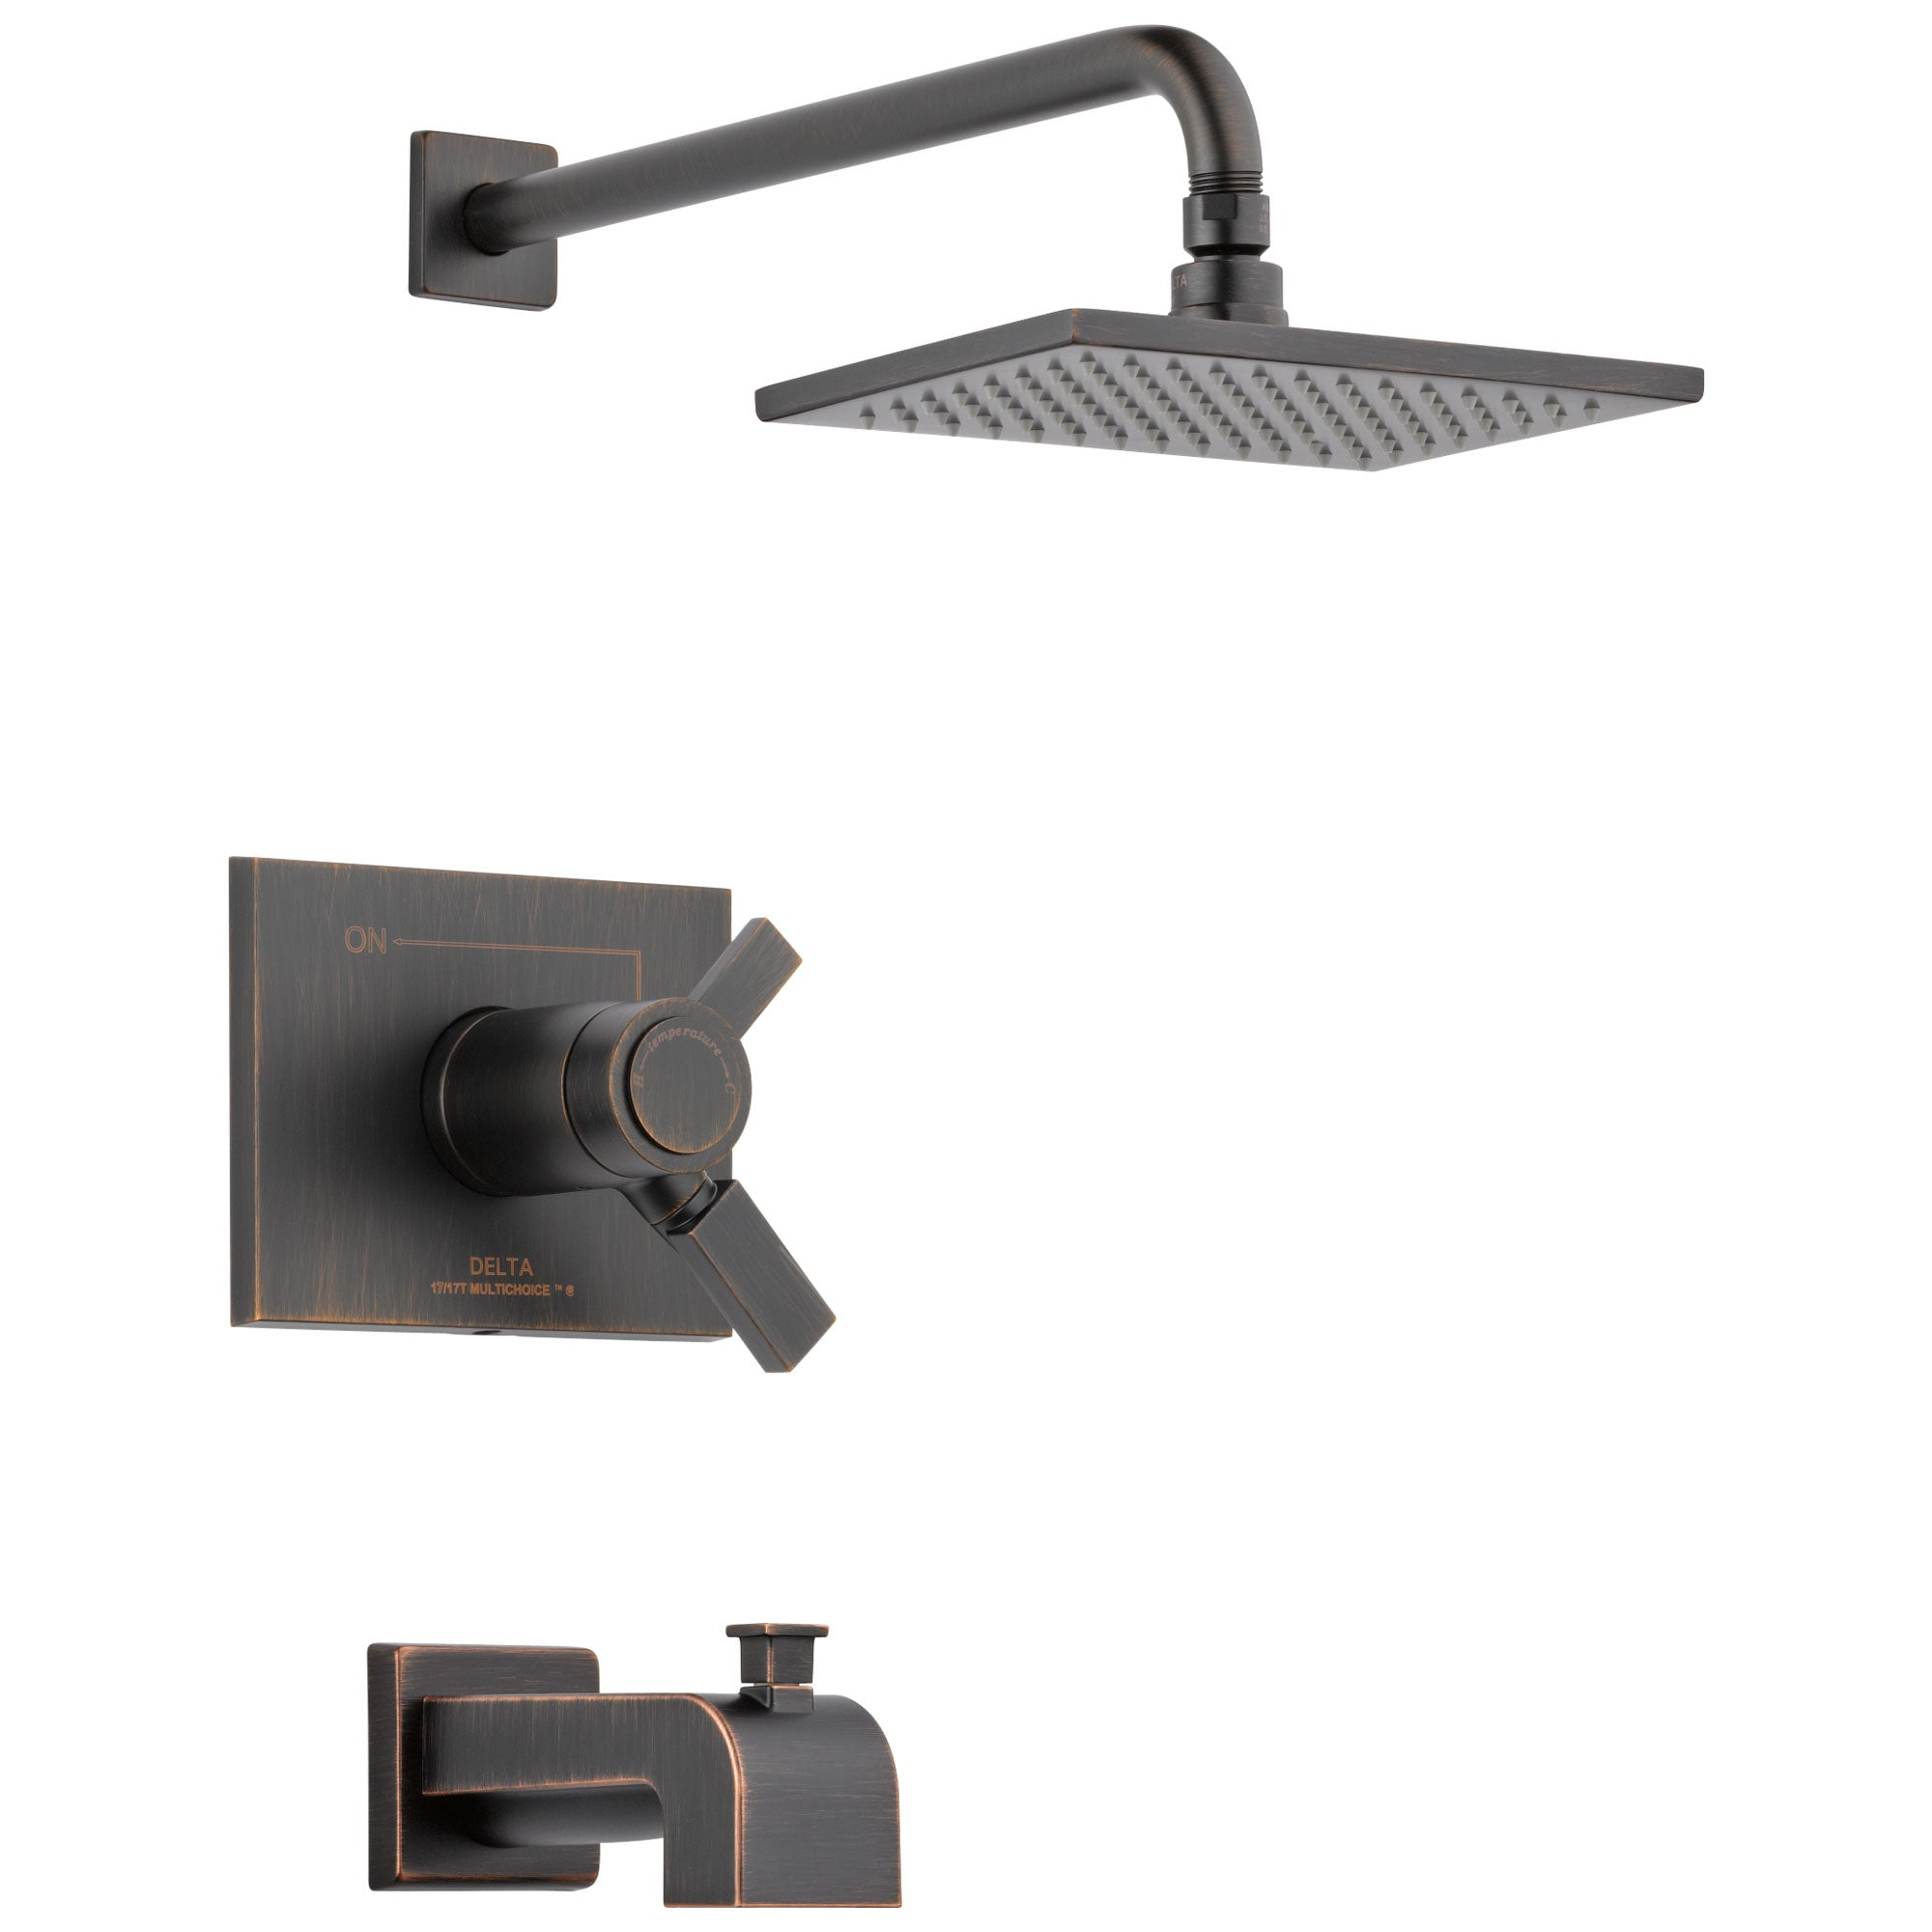 Delta Vero Venetian Bronze Finish TempAssure 17T Series Water Efficient Tub & Shower Faucet Combination Trim Kit (Requires Valve) DT17T453RBWE